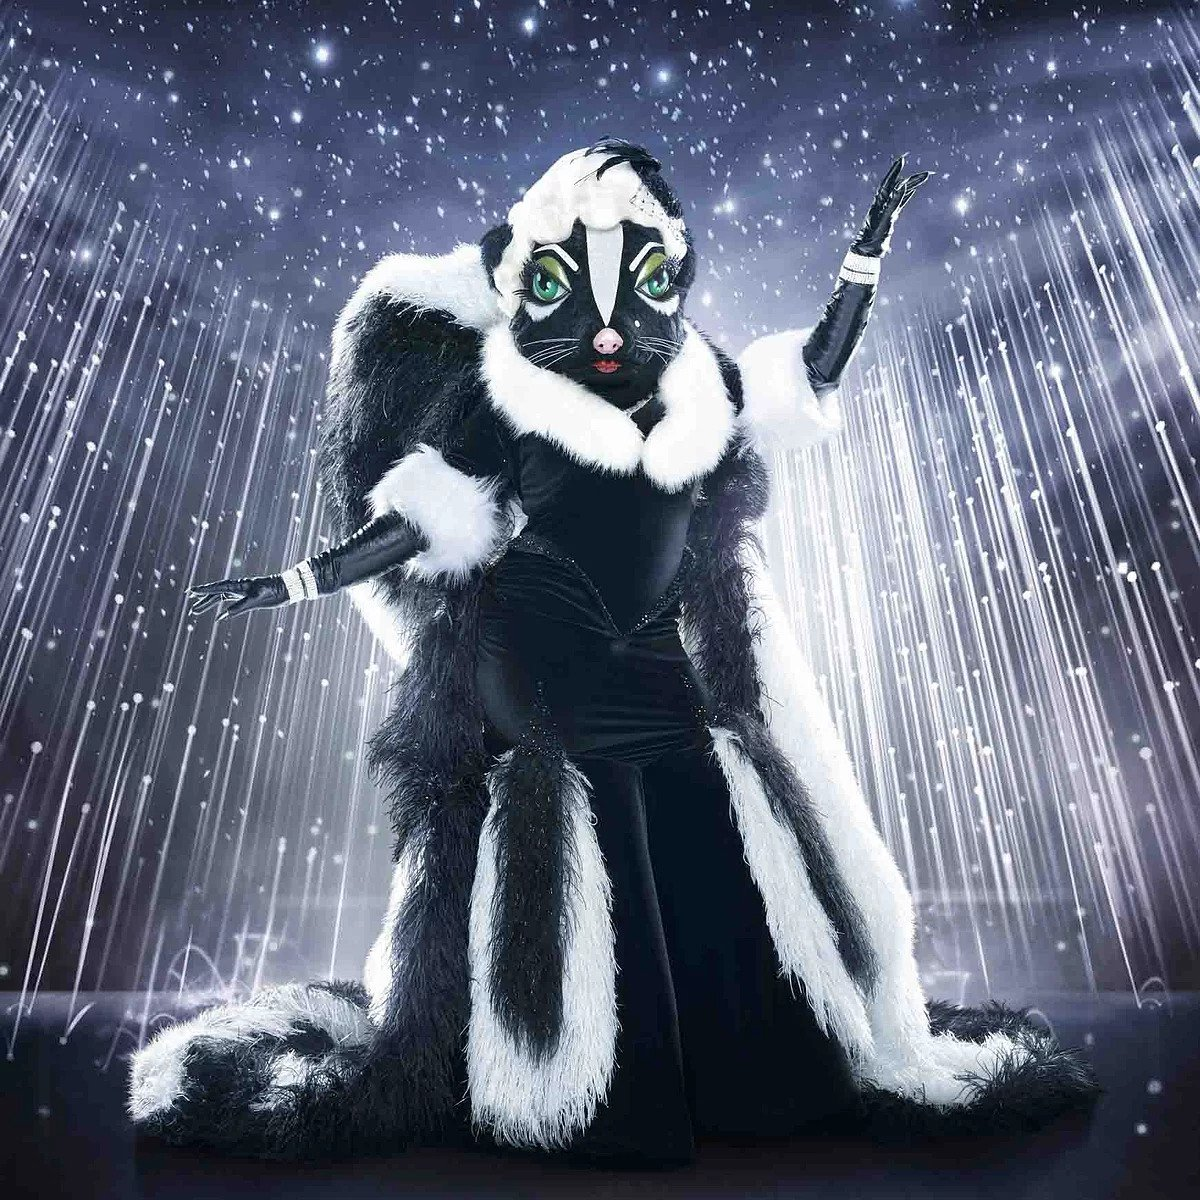 Skunk is still in to win The Masked Singer